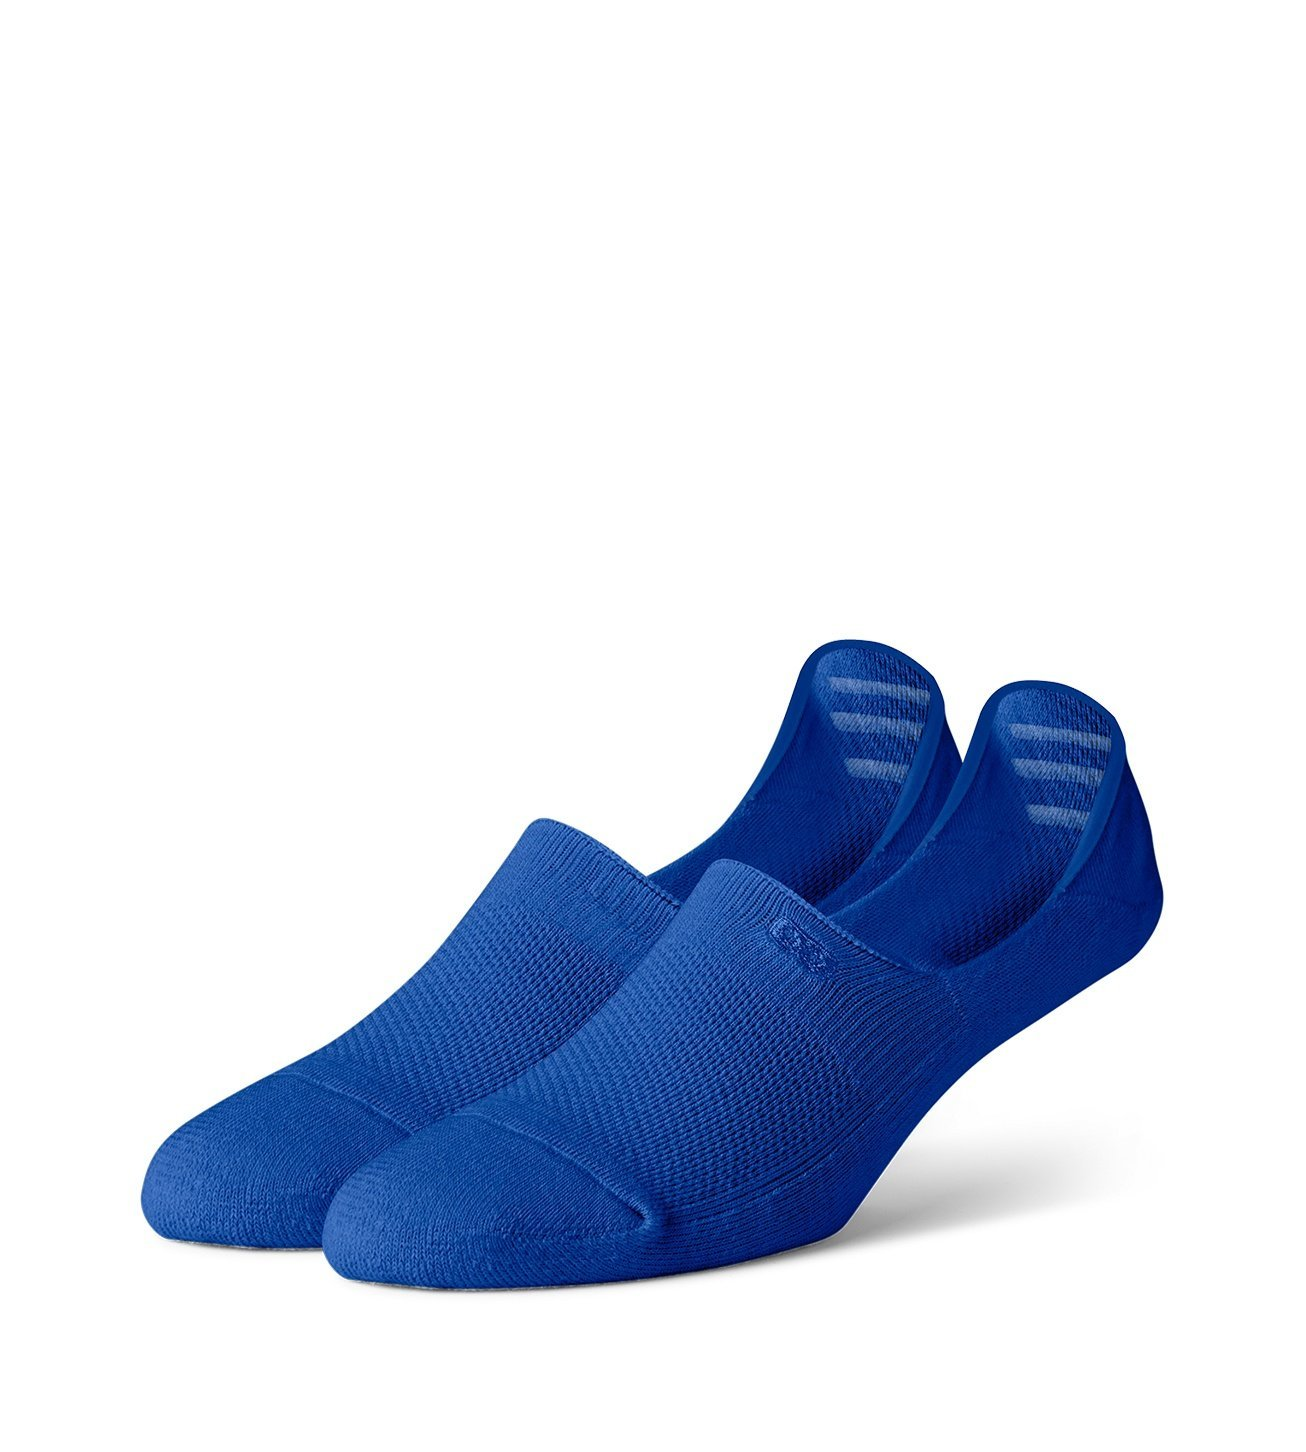 Royal Blue Women's Prism Cushion No Show Socks